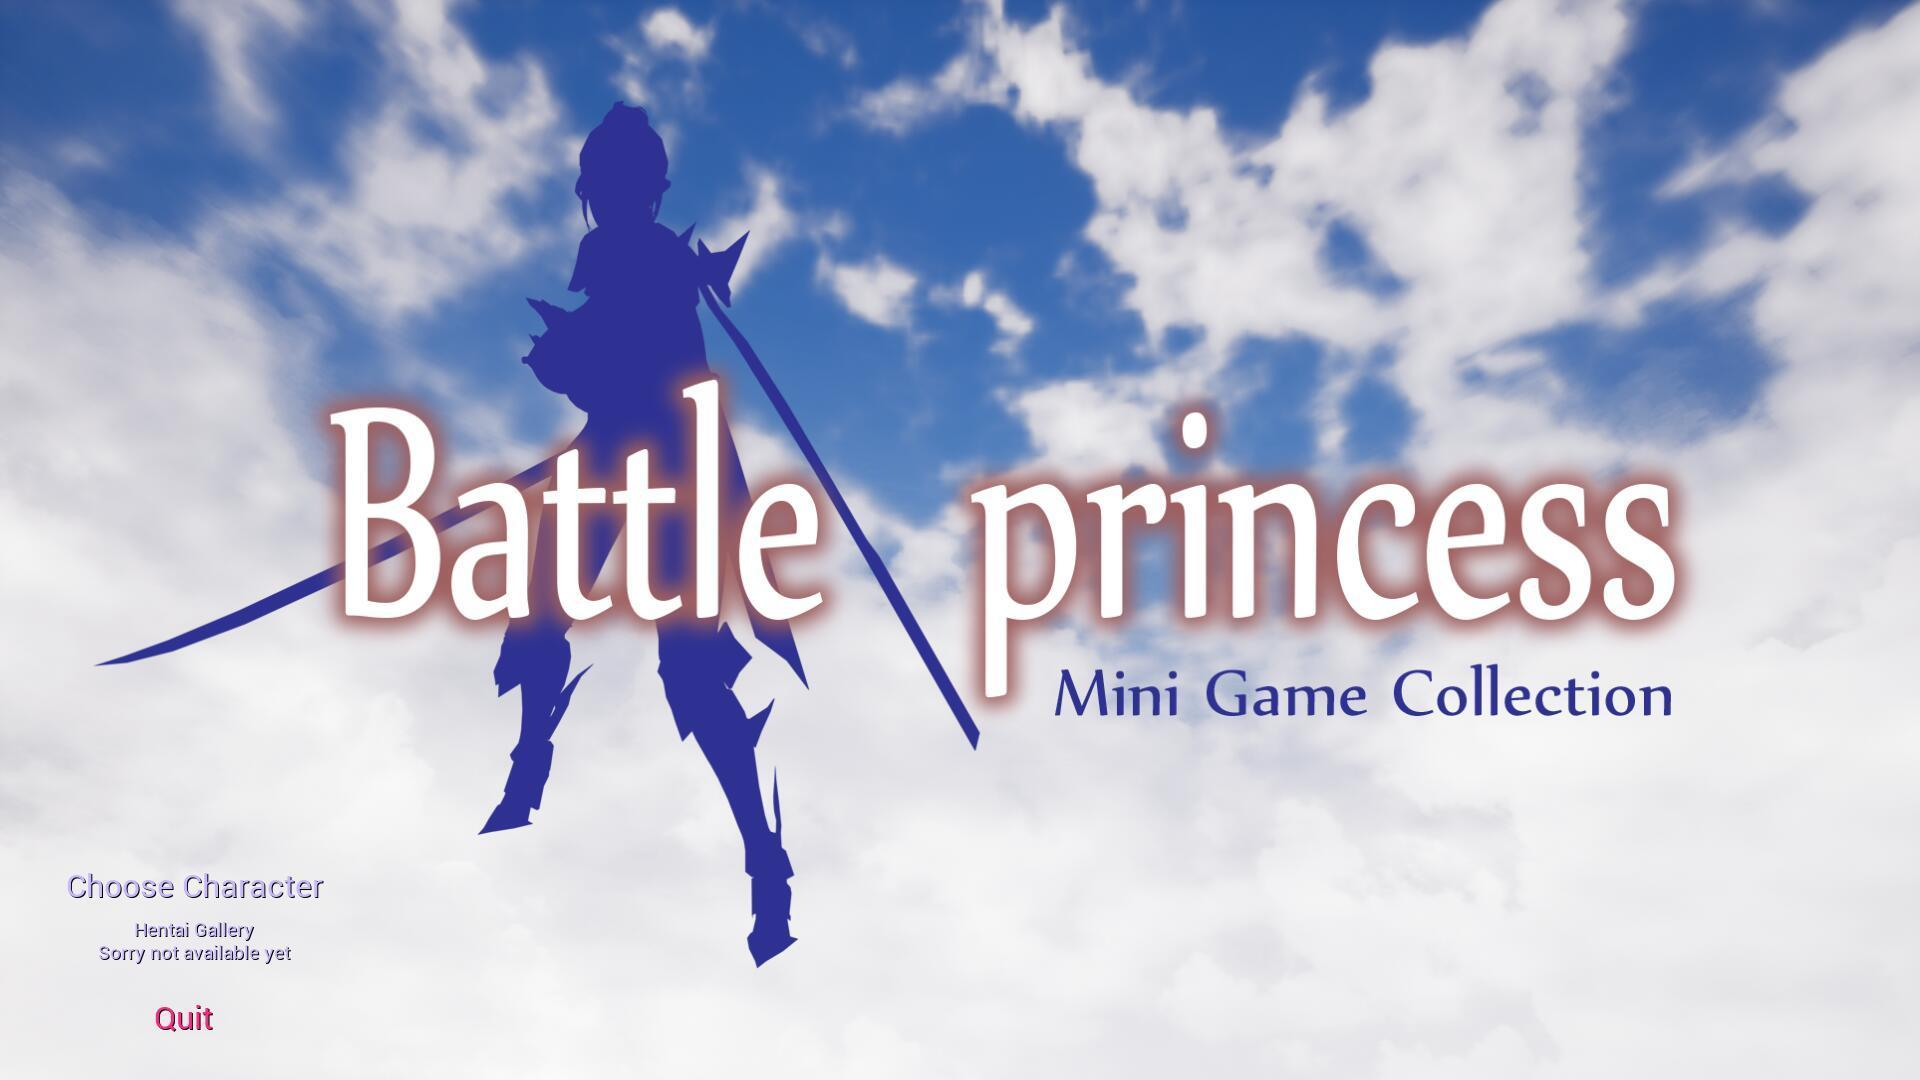 戰爭公主battleprincess